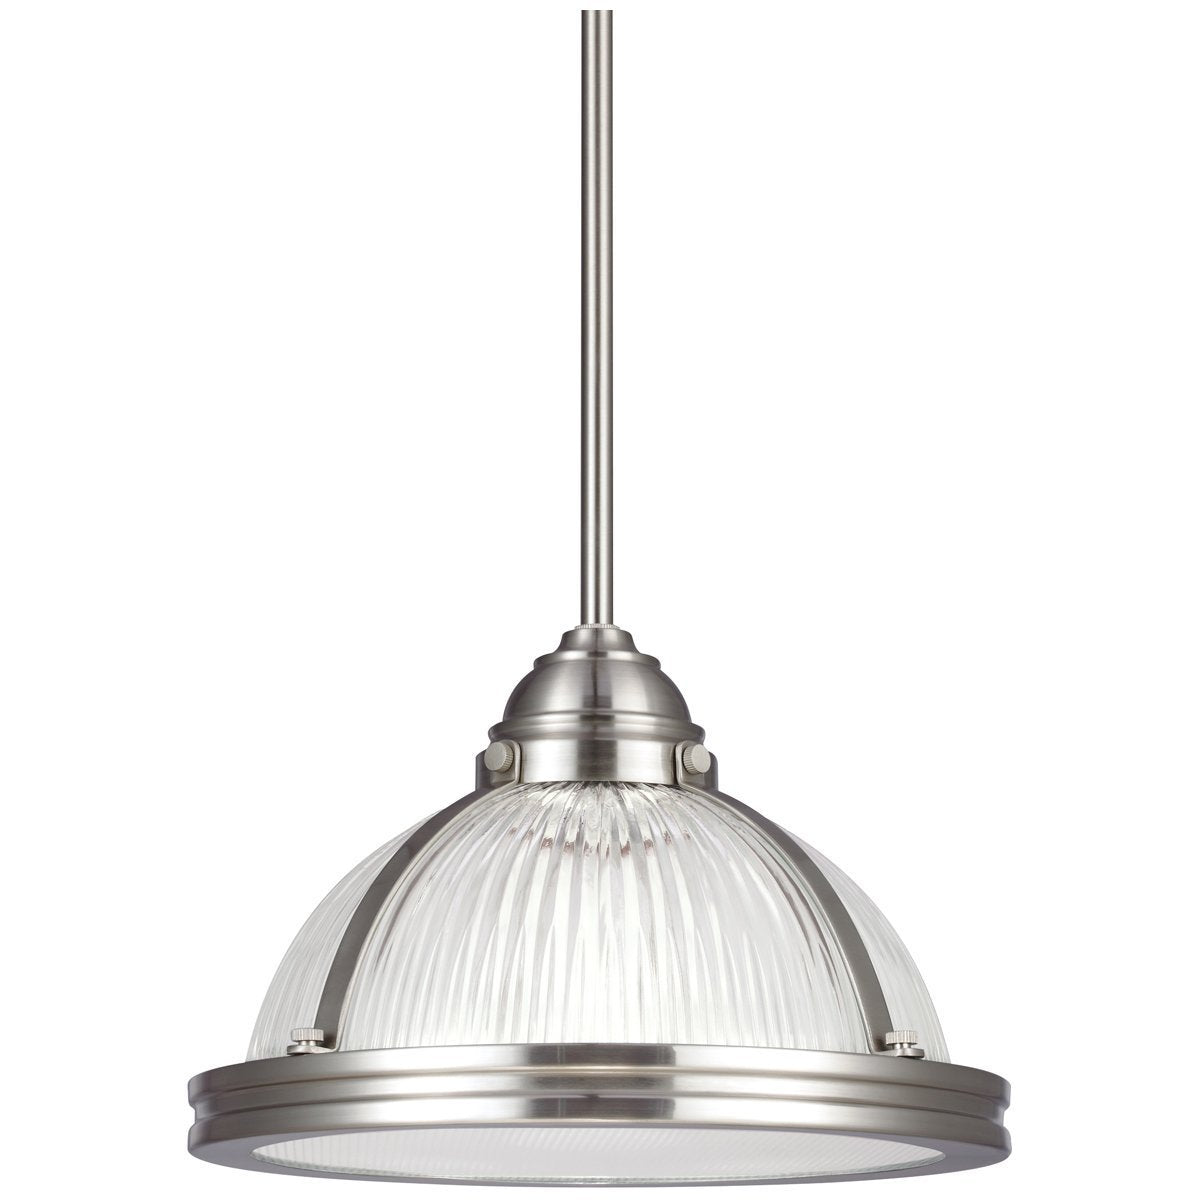 Sea Gull Lighting Pratt Street Prismatic 1 Light Pendant